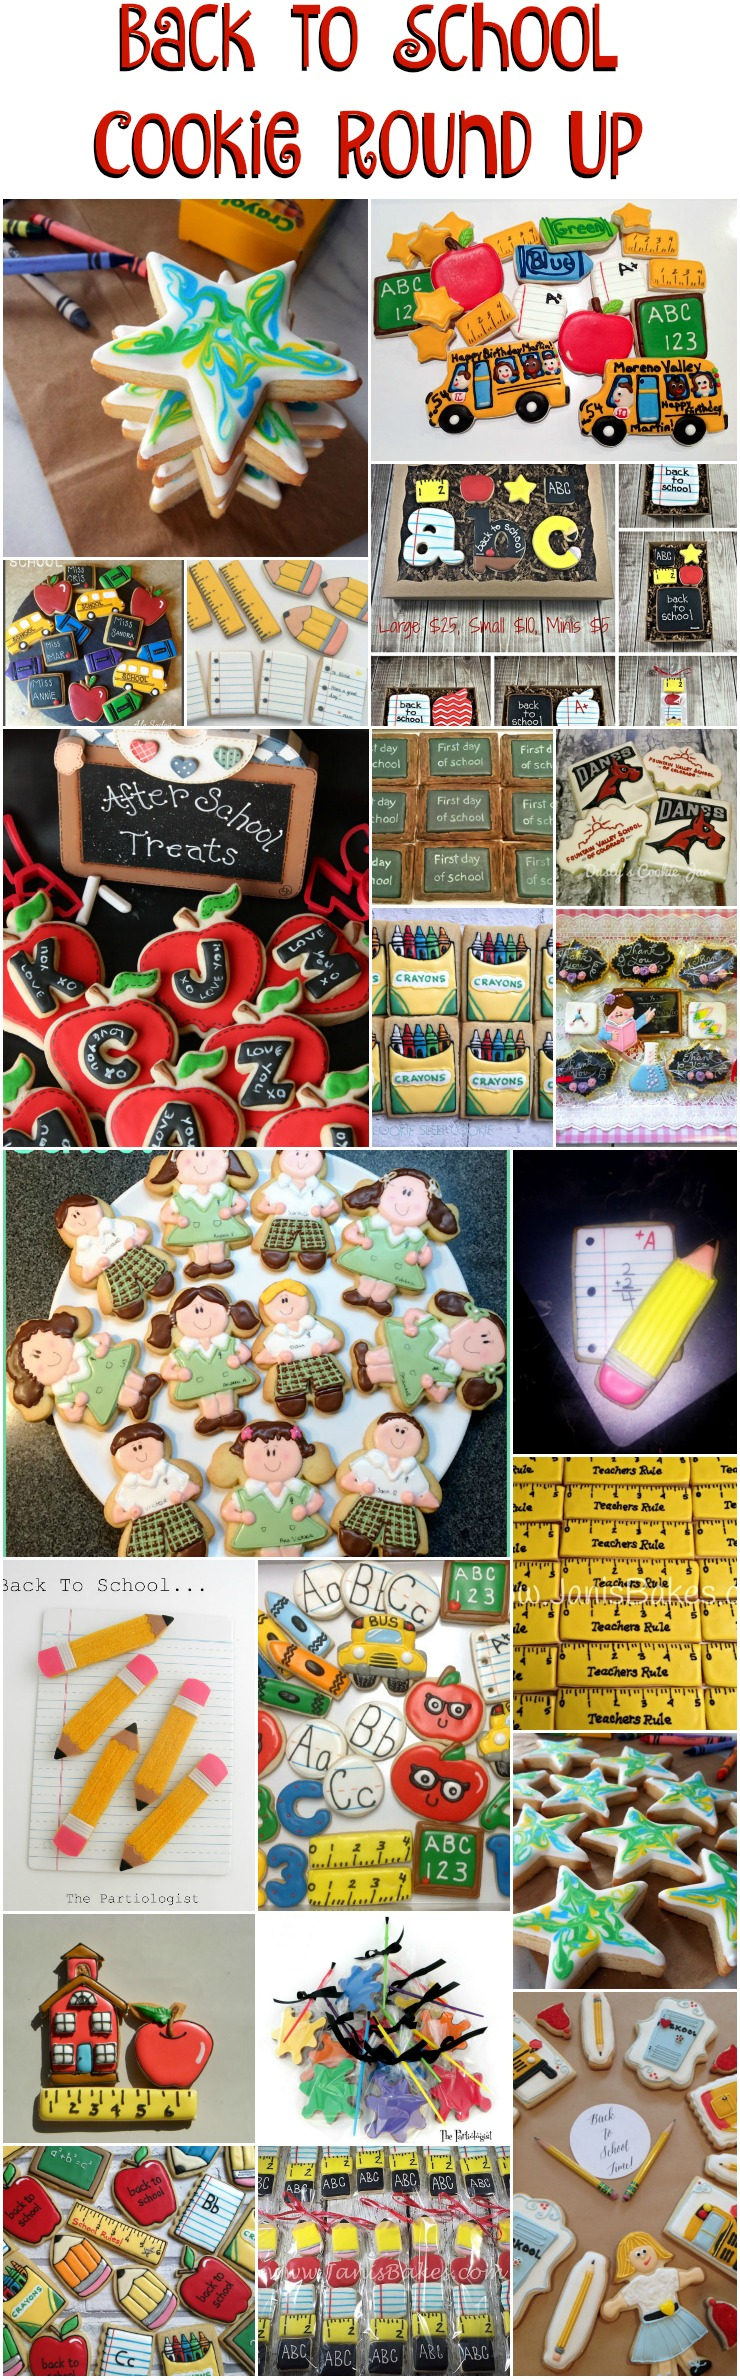 Back to School Round Up - Cookies that will get you an A+ | The Bearfoot Baker